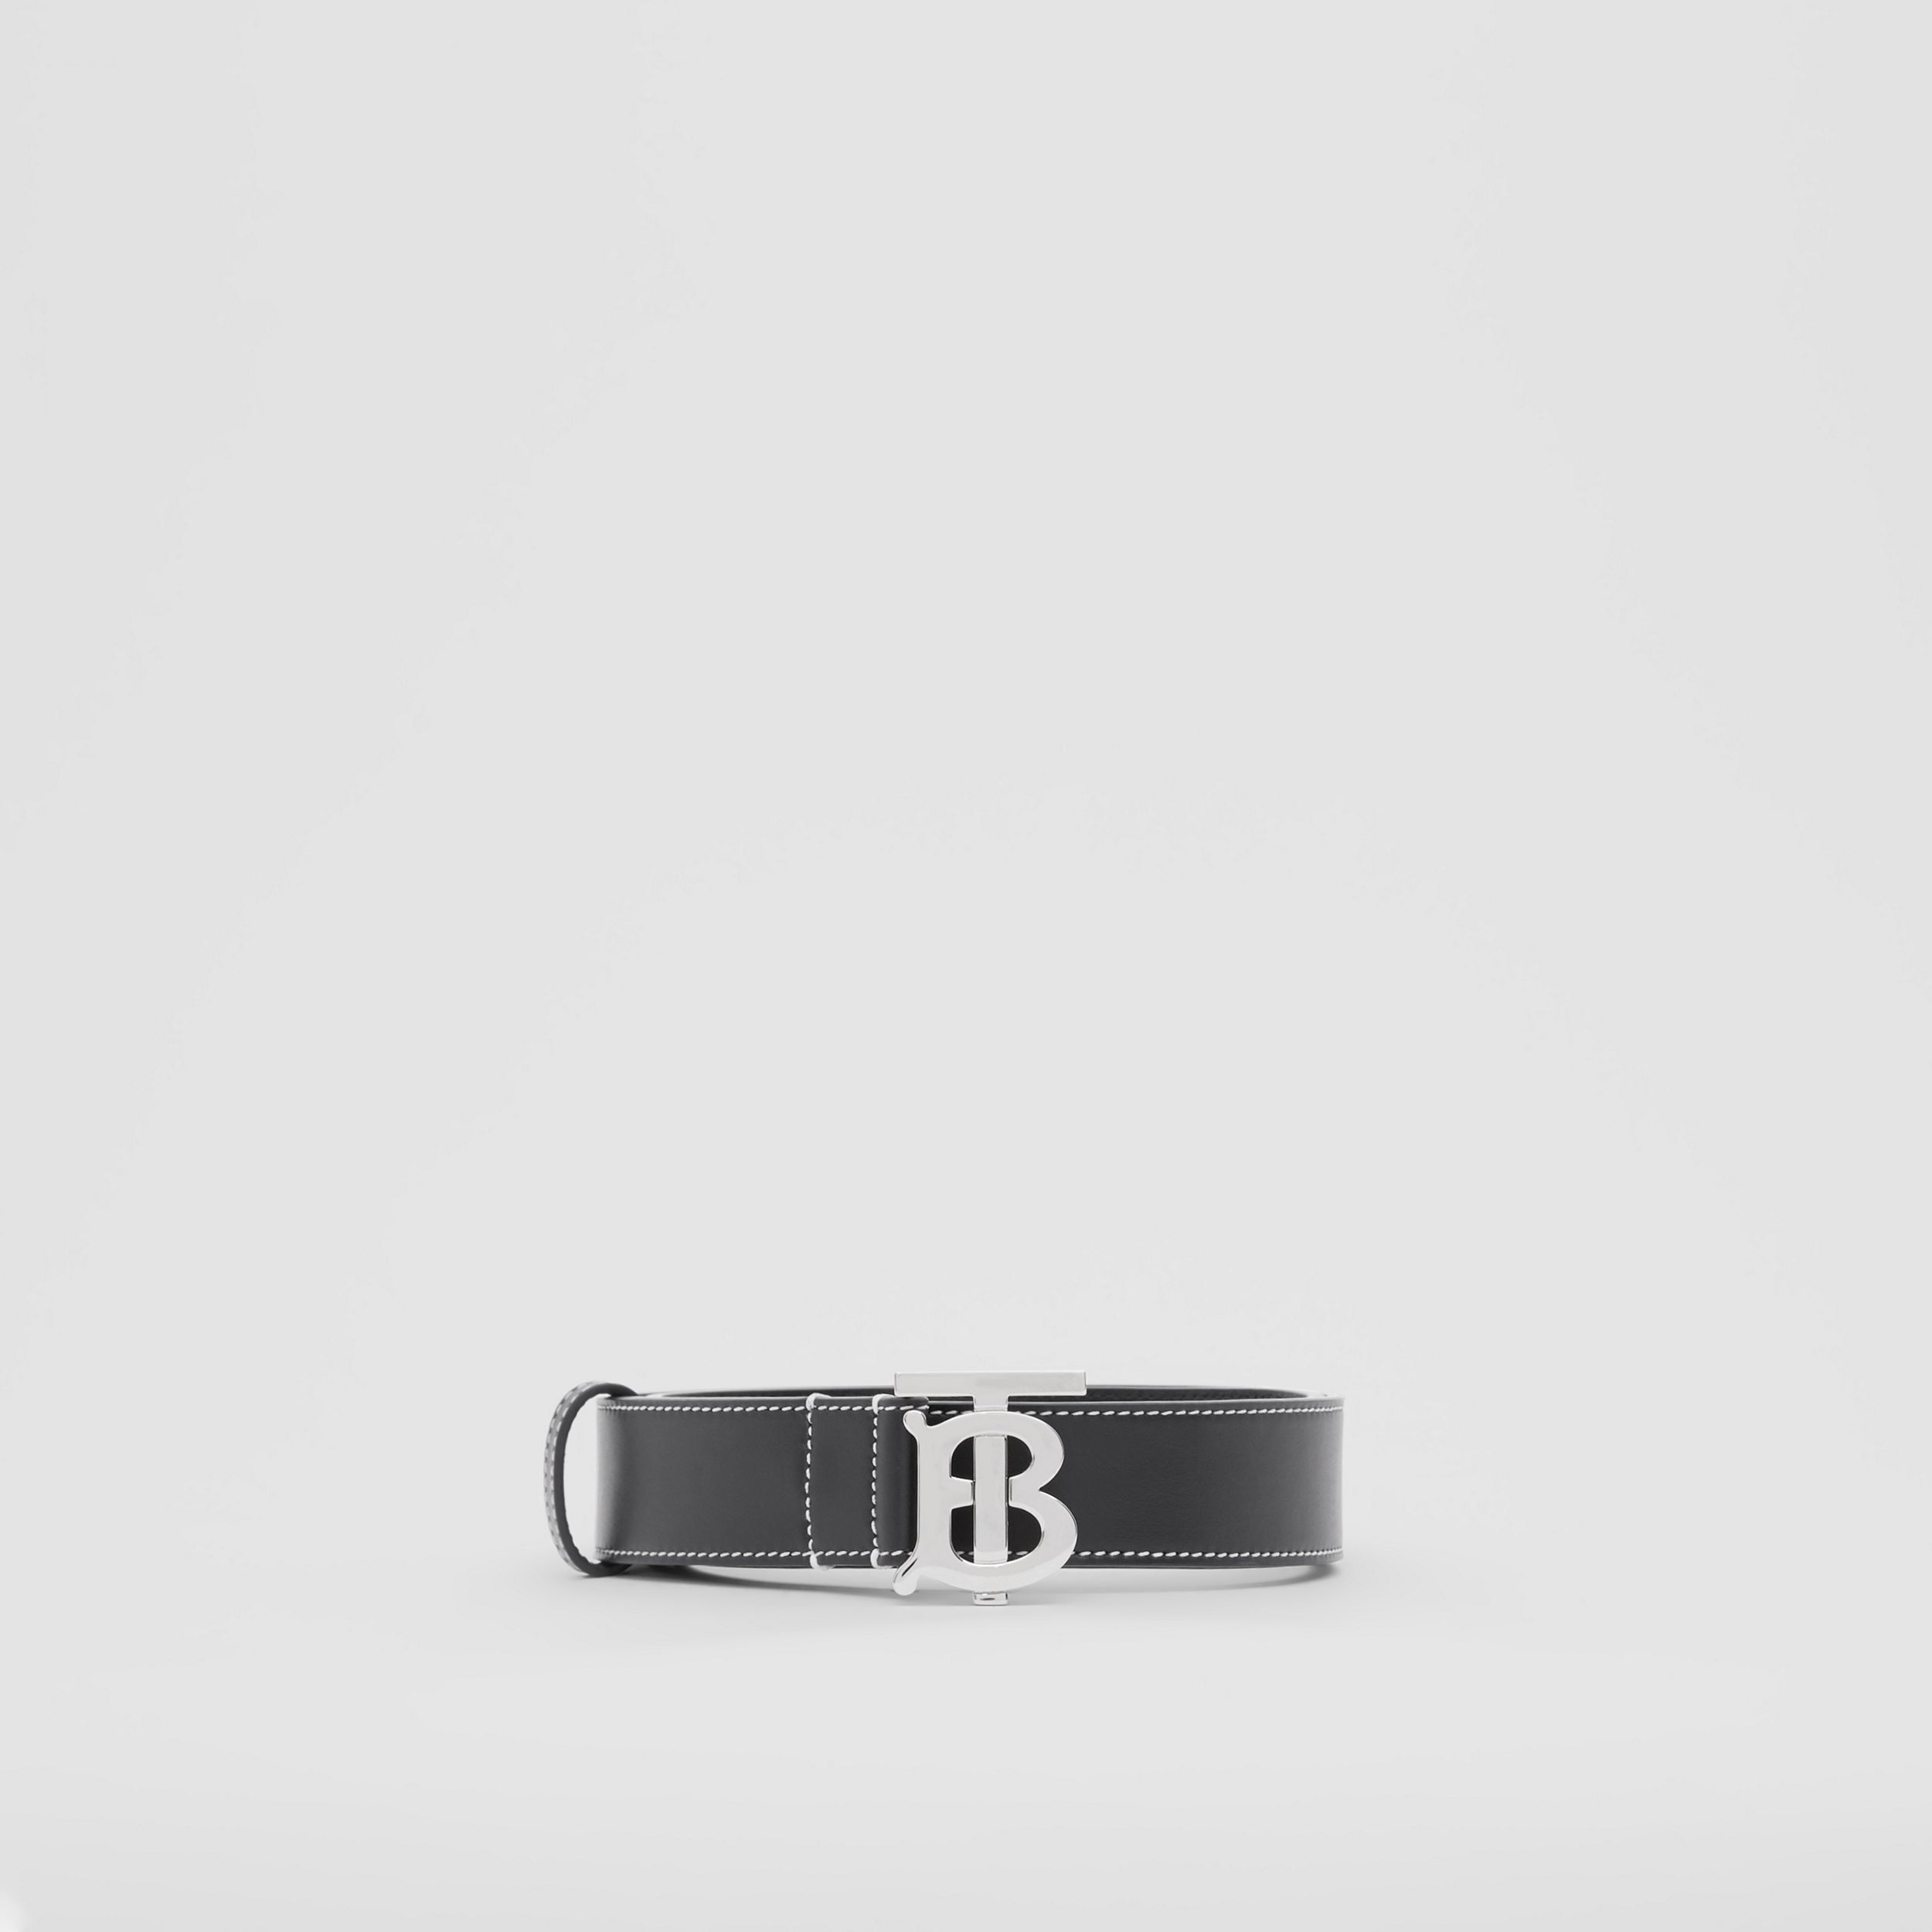 Monogram Motif Topstitched Leather Belt in Black - Men | Burberry - 4